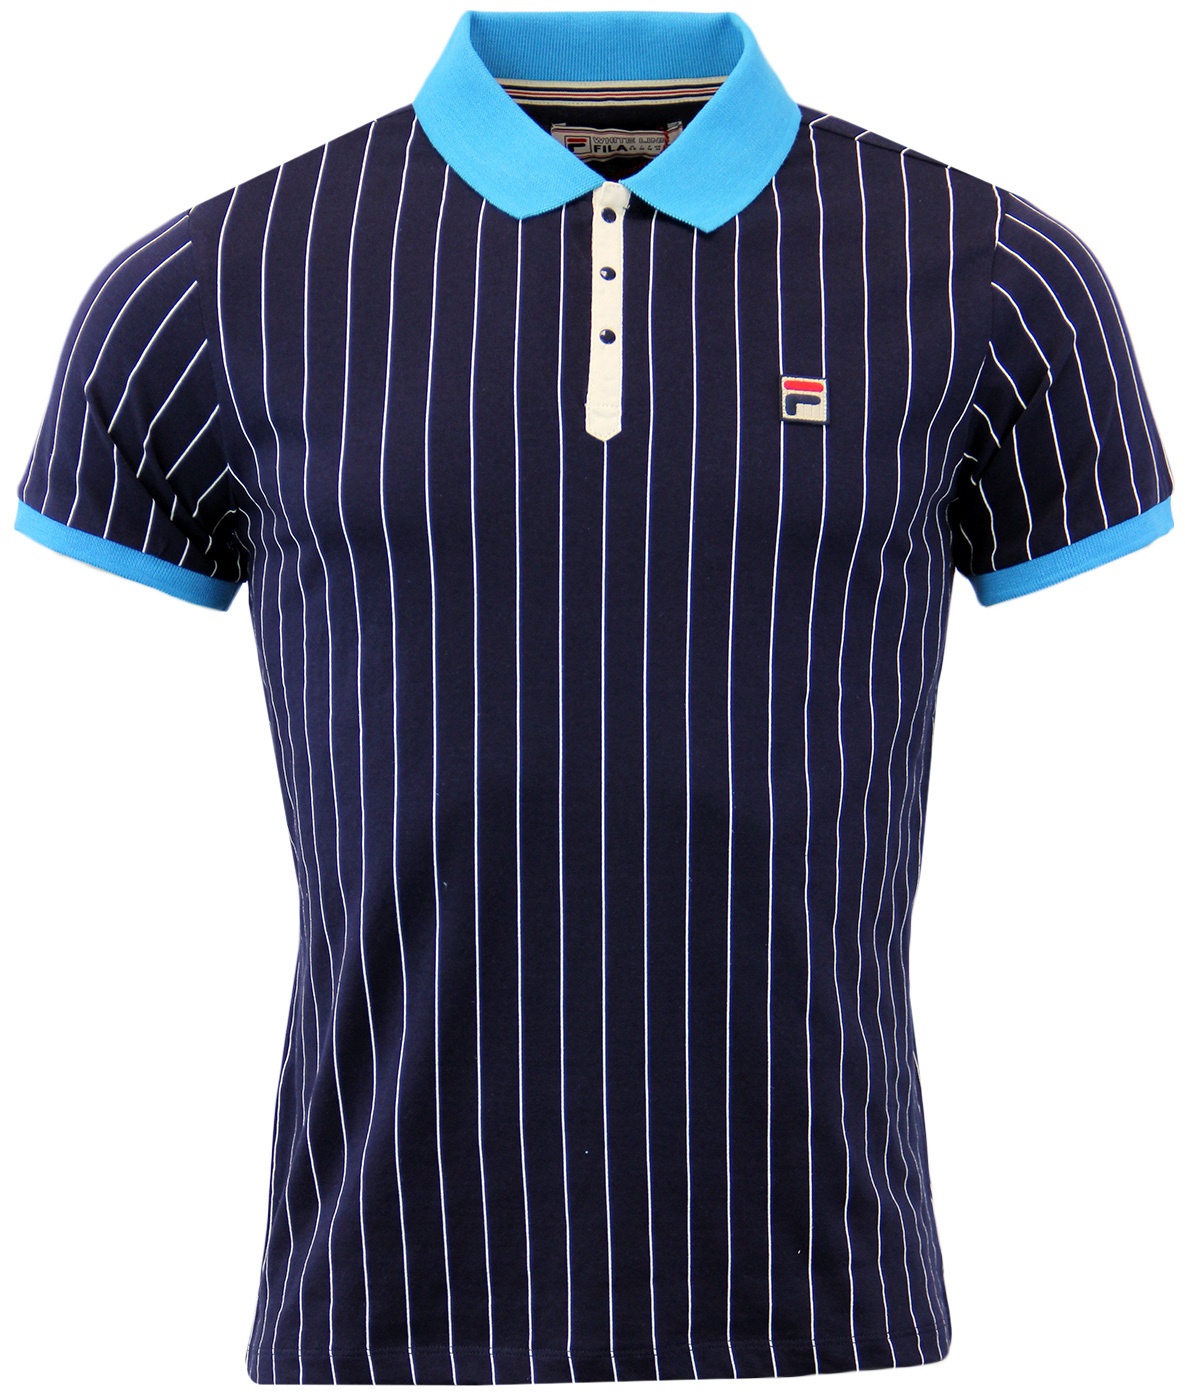 BB1 Borg Polo FILA VINTAGE Retro 1970s Polo Top P